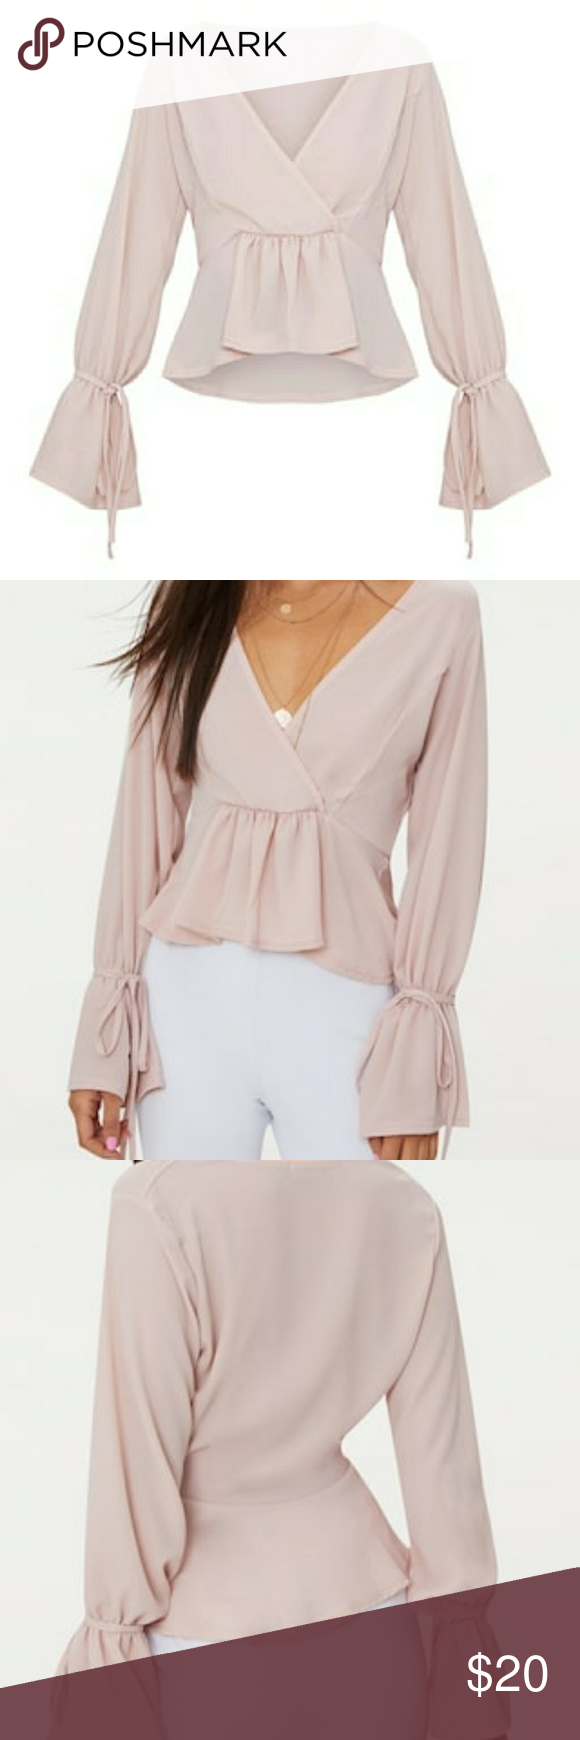 fa9078916faf Pretty Little Thing blush blouse New with tags! Size 6